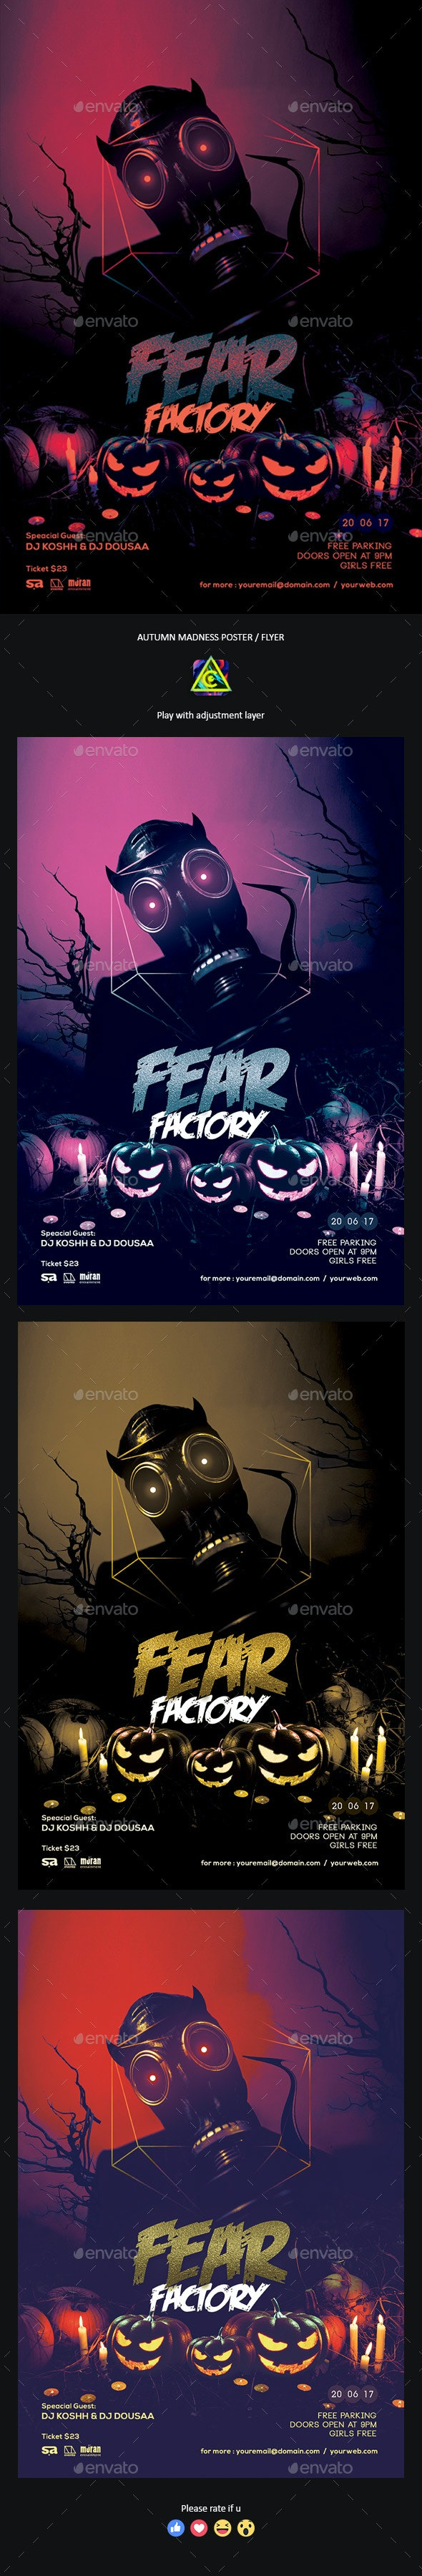 Fear Factory Poster / Flyer - Clubs & Parties Events